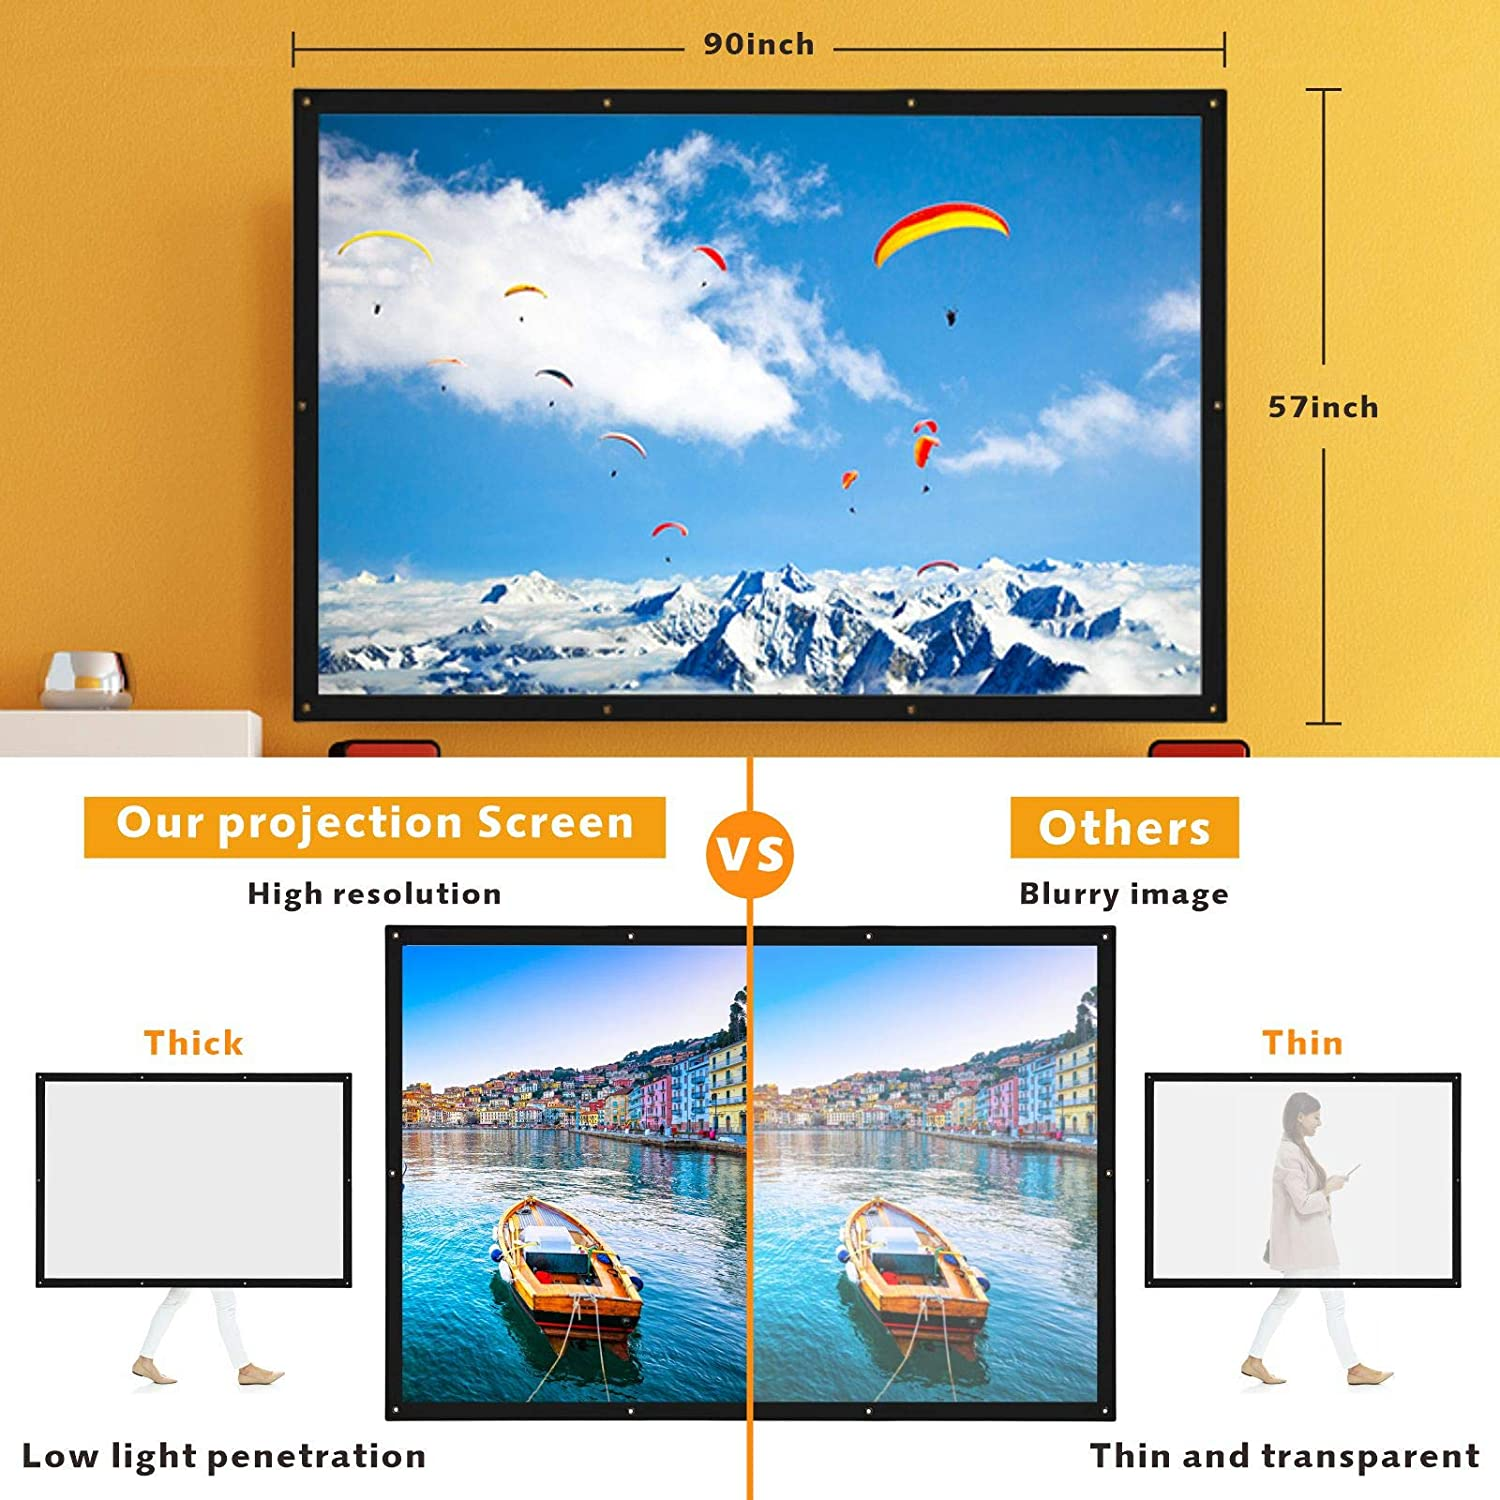 Foldable Canvas Outdoor Movie Screen with Hooks and Ropes for Home Theater Support Front /& Rear Projection 160/°Viewing 4KHD 1.4 Gain Projector Screen 16:9 Wevivi 100 inch Video Projection Screens